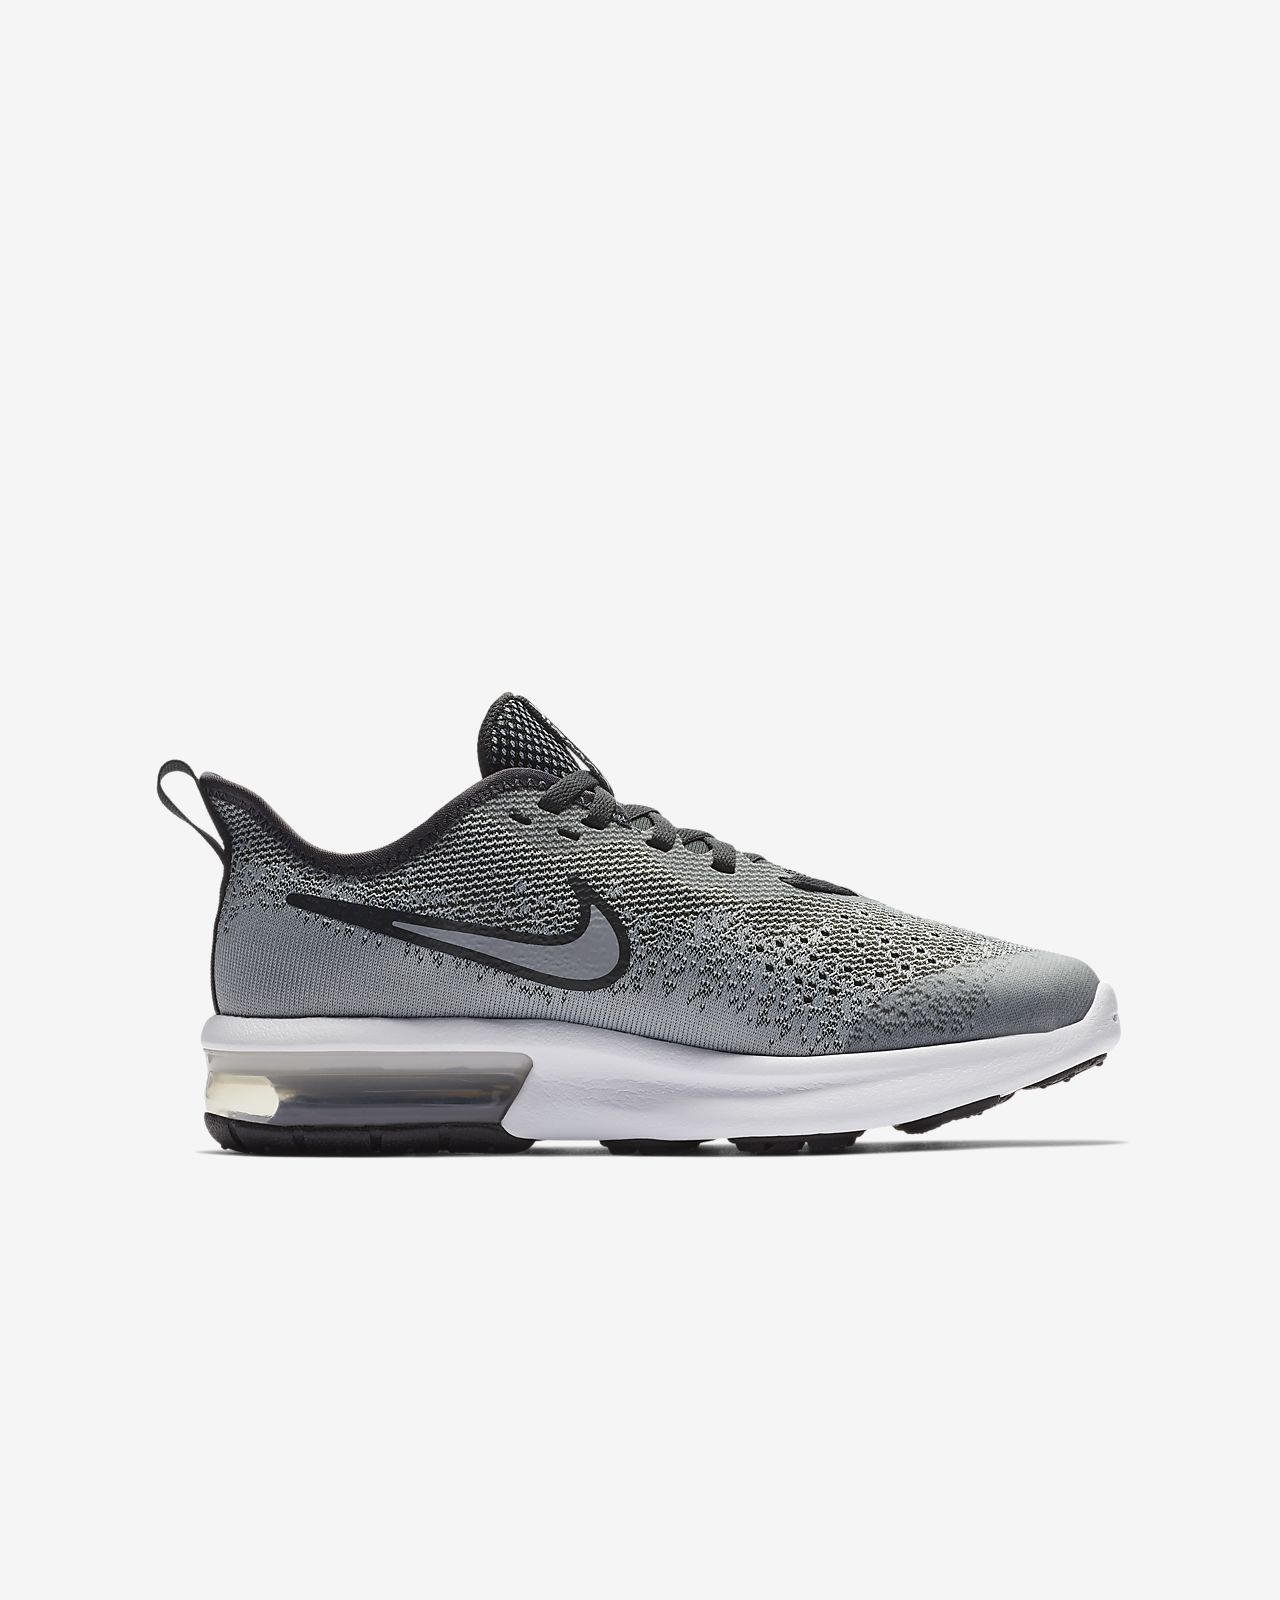 Sapatilhas Nike Air Max Sequent 4 Júnior